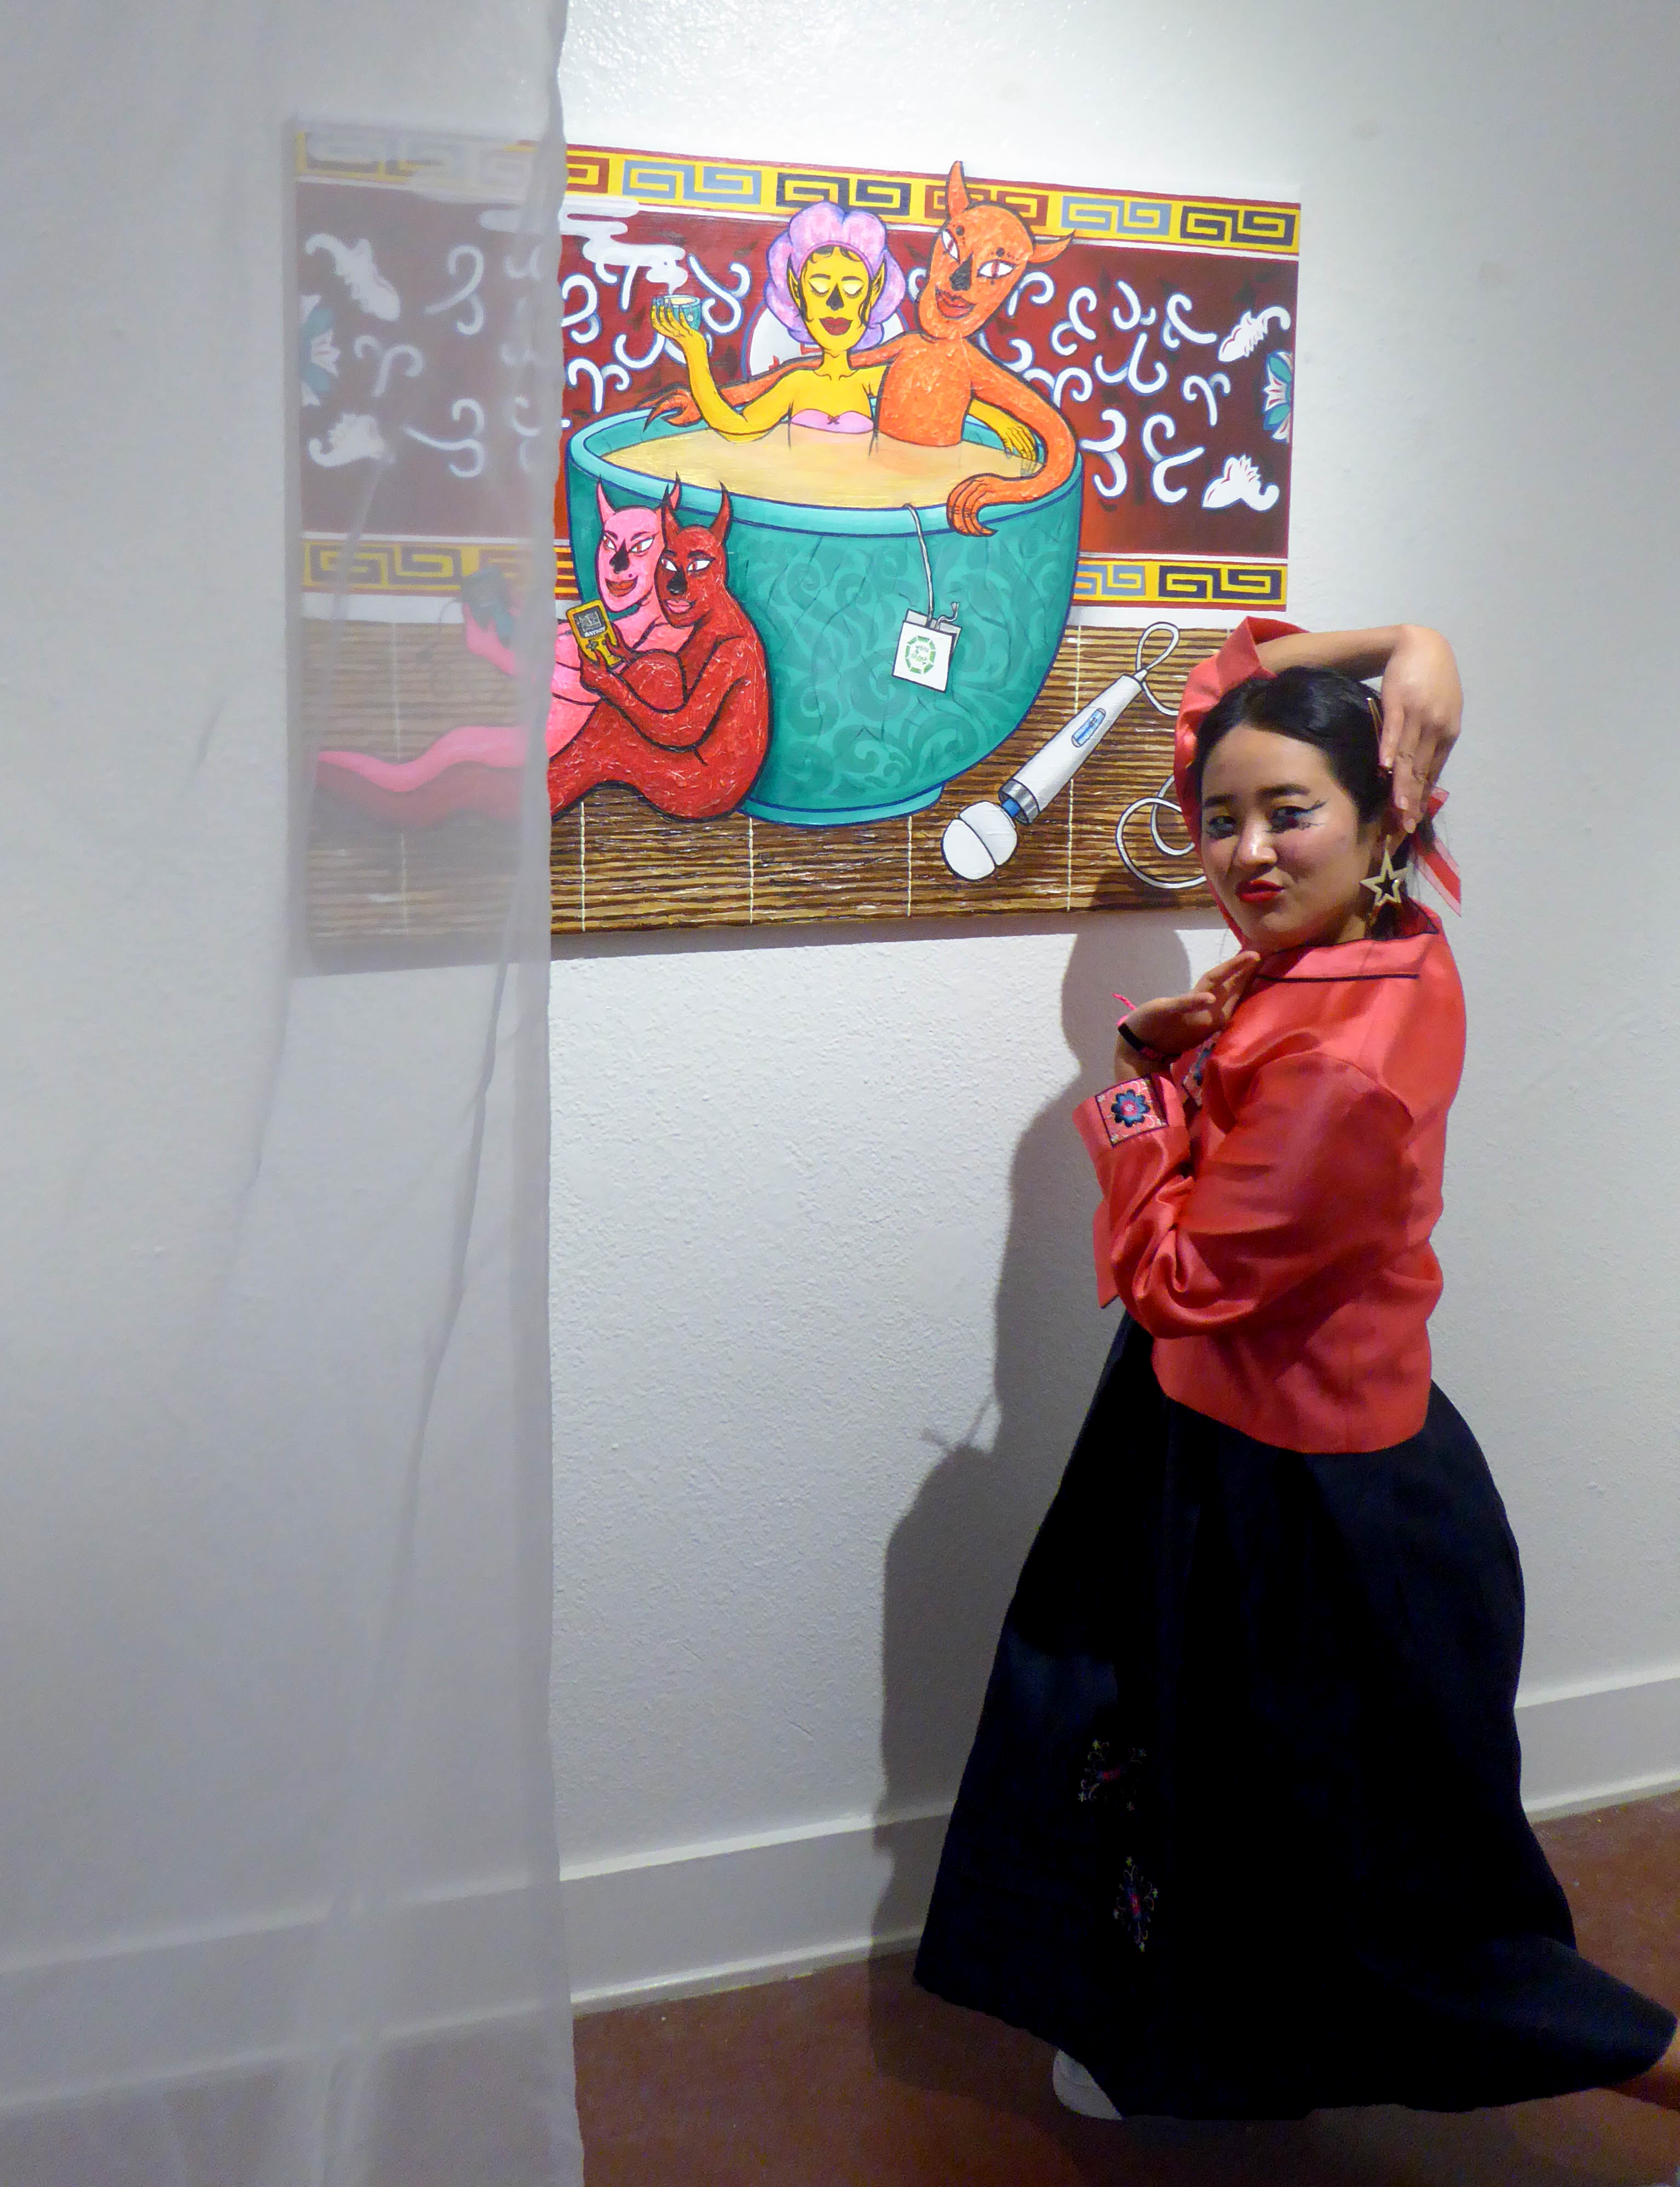 'Memoirs of a Banana Girl': A Conversation with artist Lizzy Choi